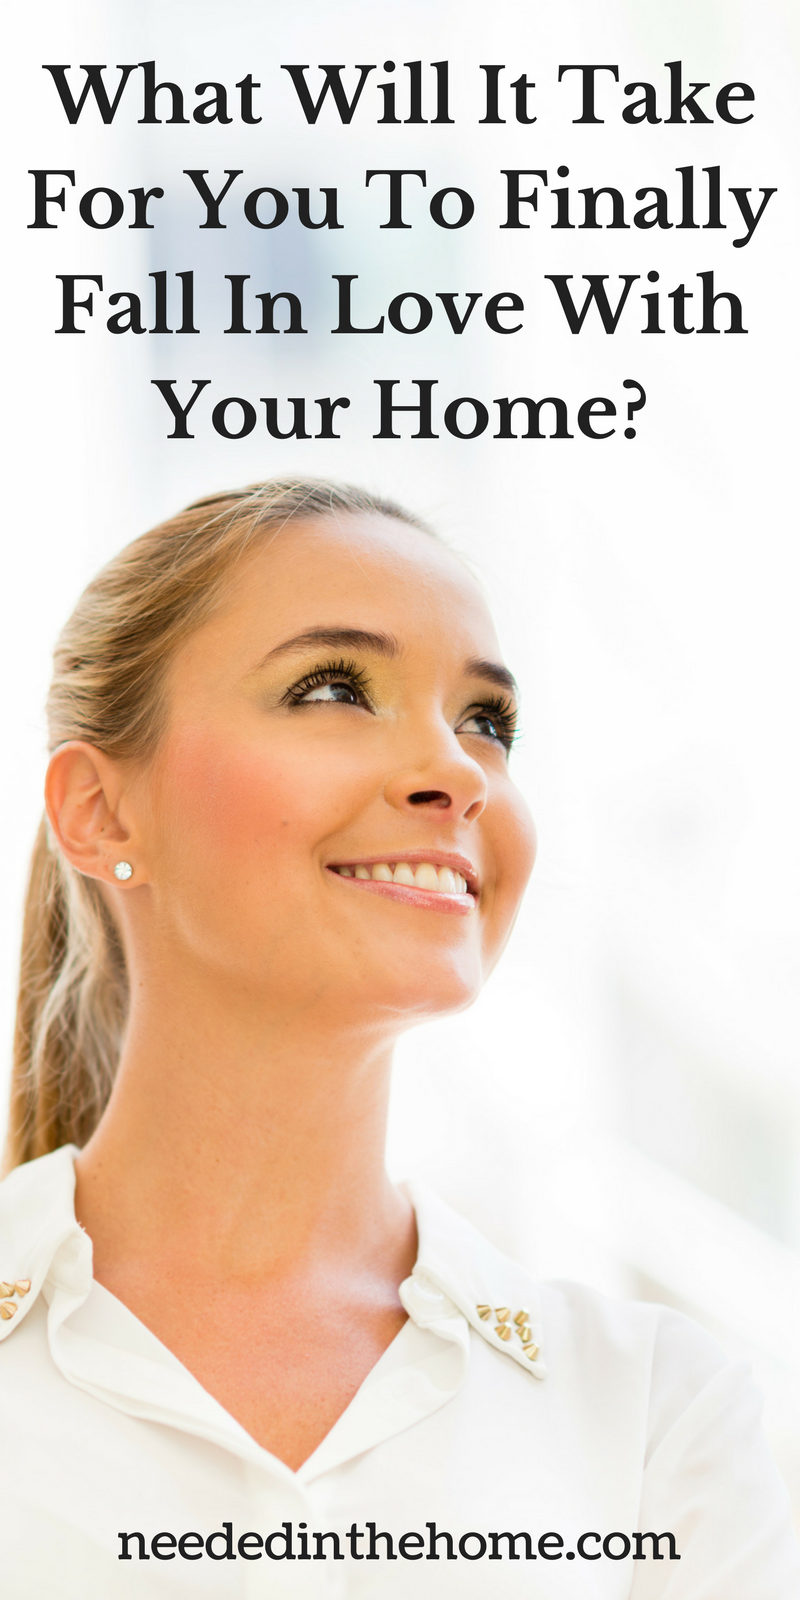 blond woman hopeful smiling What Will It Take For You To Finally Fall In Love With Your Home?